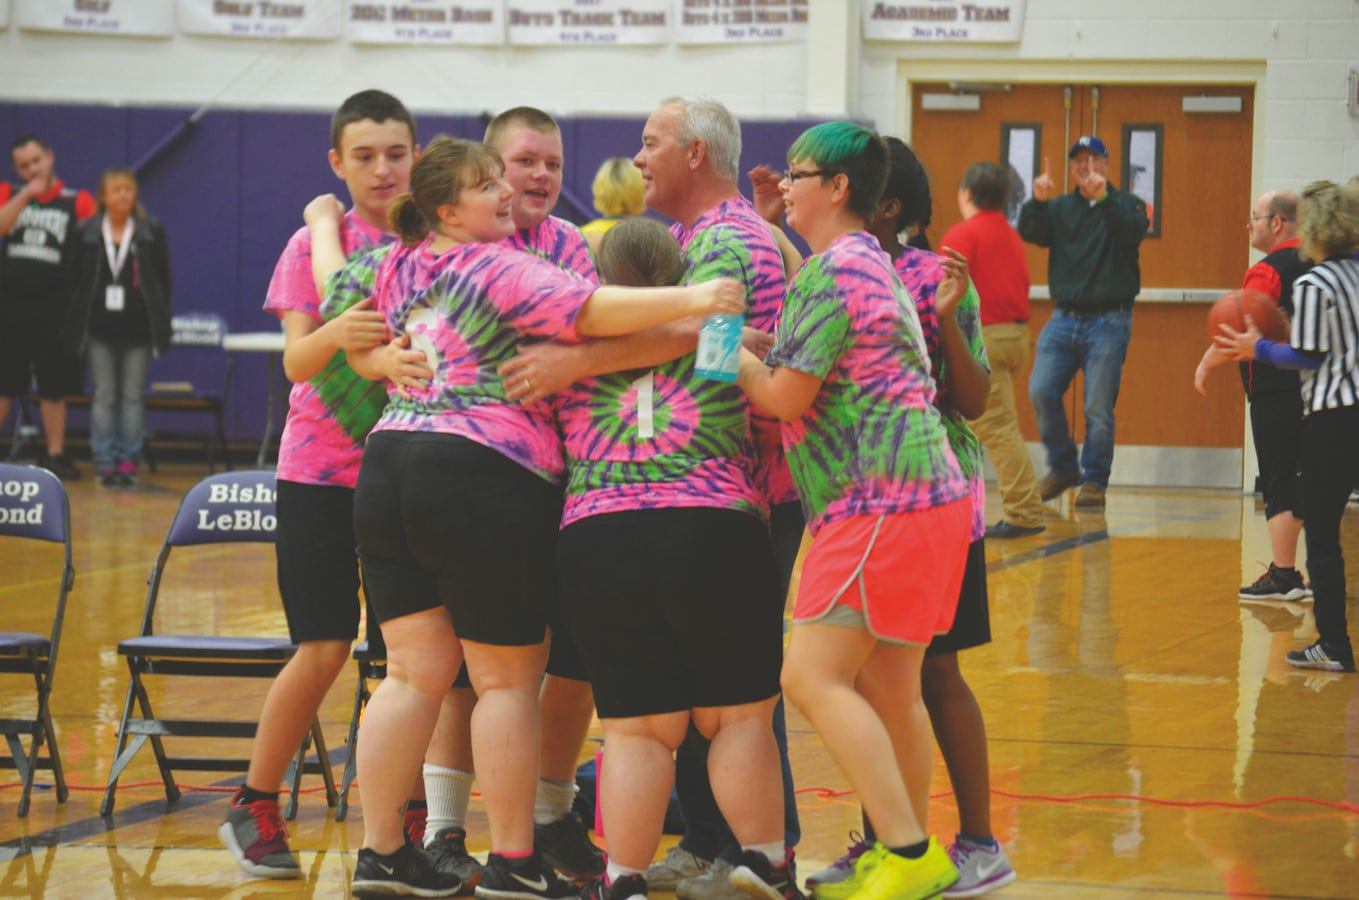 A basketball team wearing pink, purple, and green tie-dye uniforms take a moment for a group hug on the court